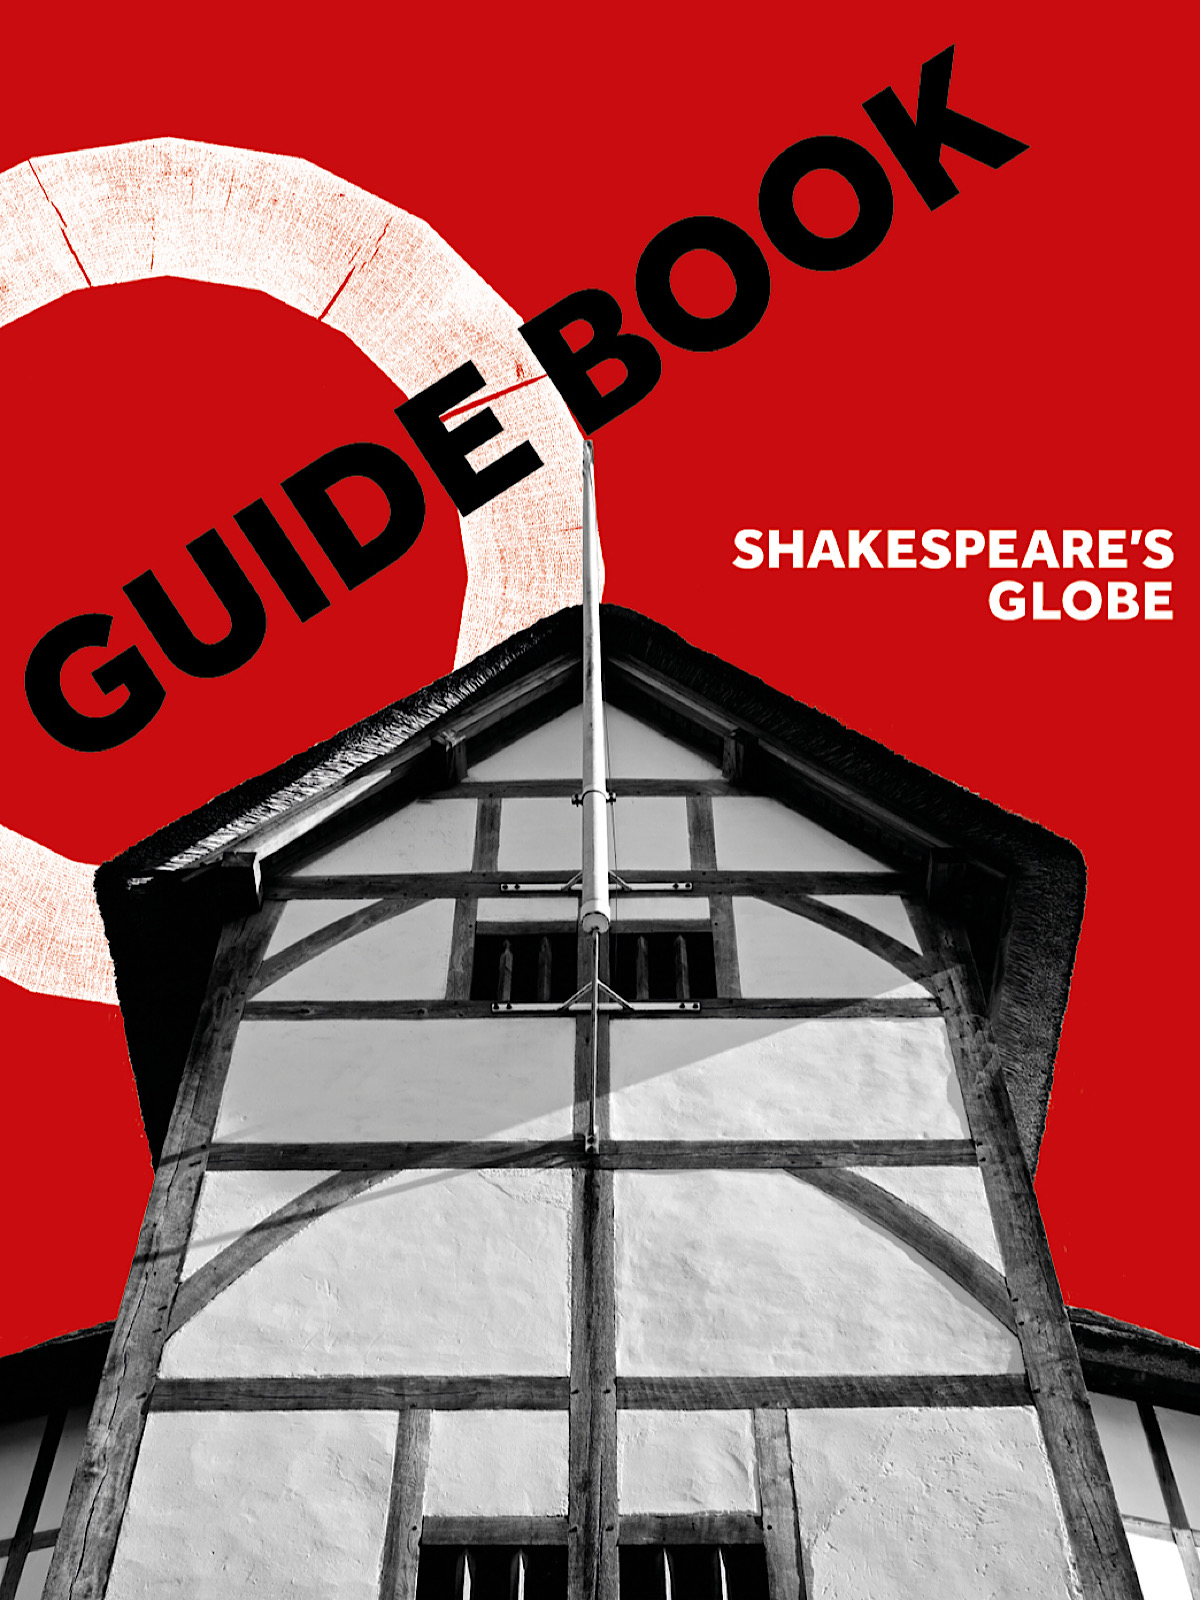 An collage graphic has a bright red background, a black and white image of a timber framed theatre and the word 'guidebook' at the top